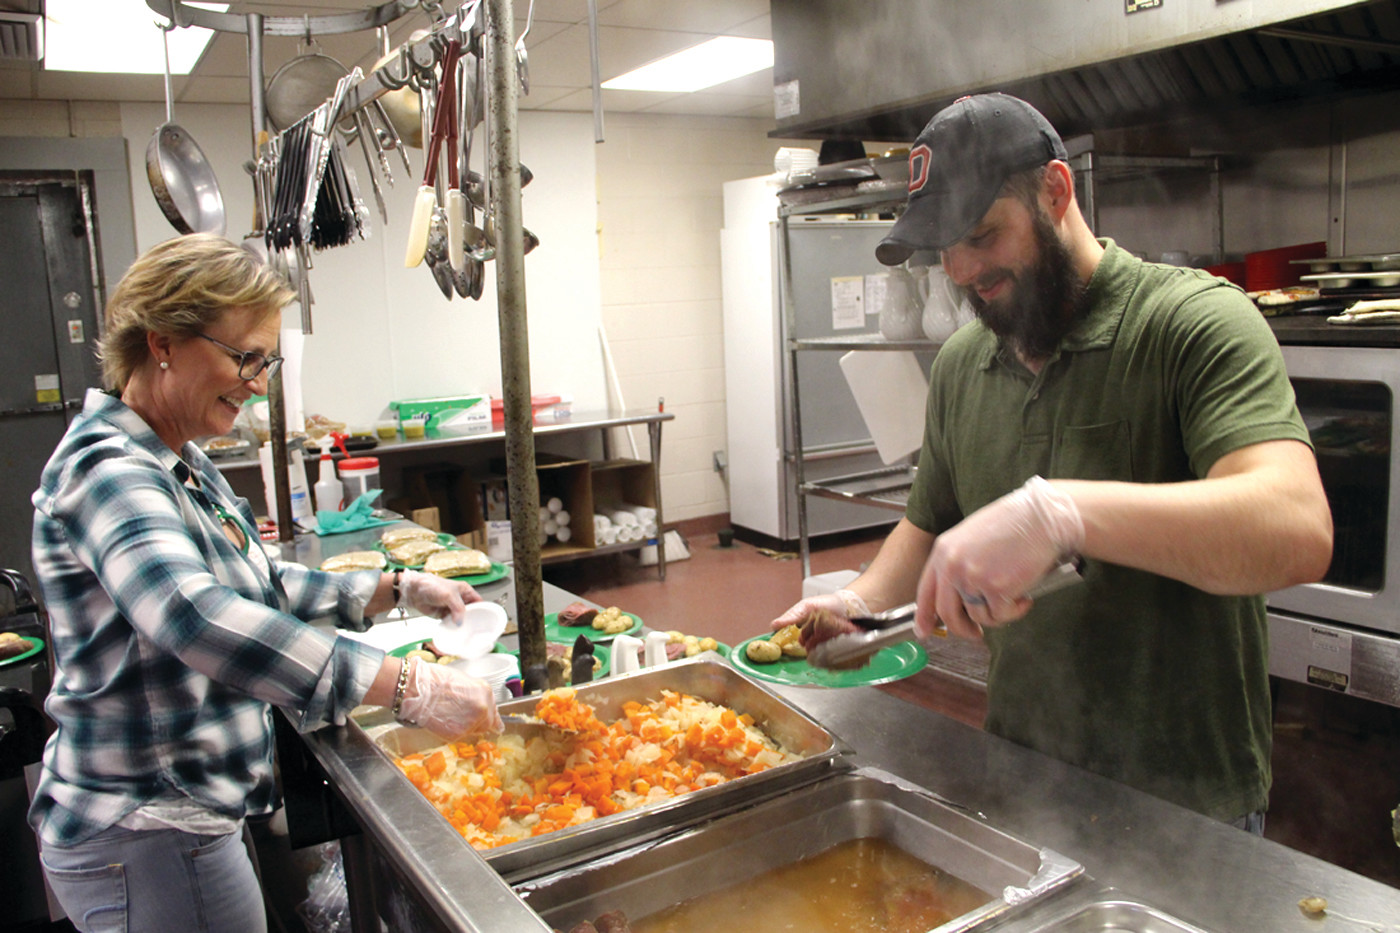 AN IRISH MEAL: Volunteer Rhonda McNamara and chef Kevin Boyes plate the corned beef lunches served at the Pilgrim Senior Center Friday.